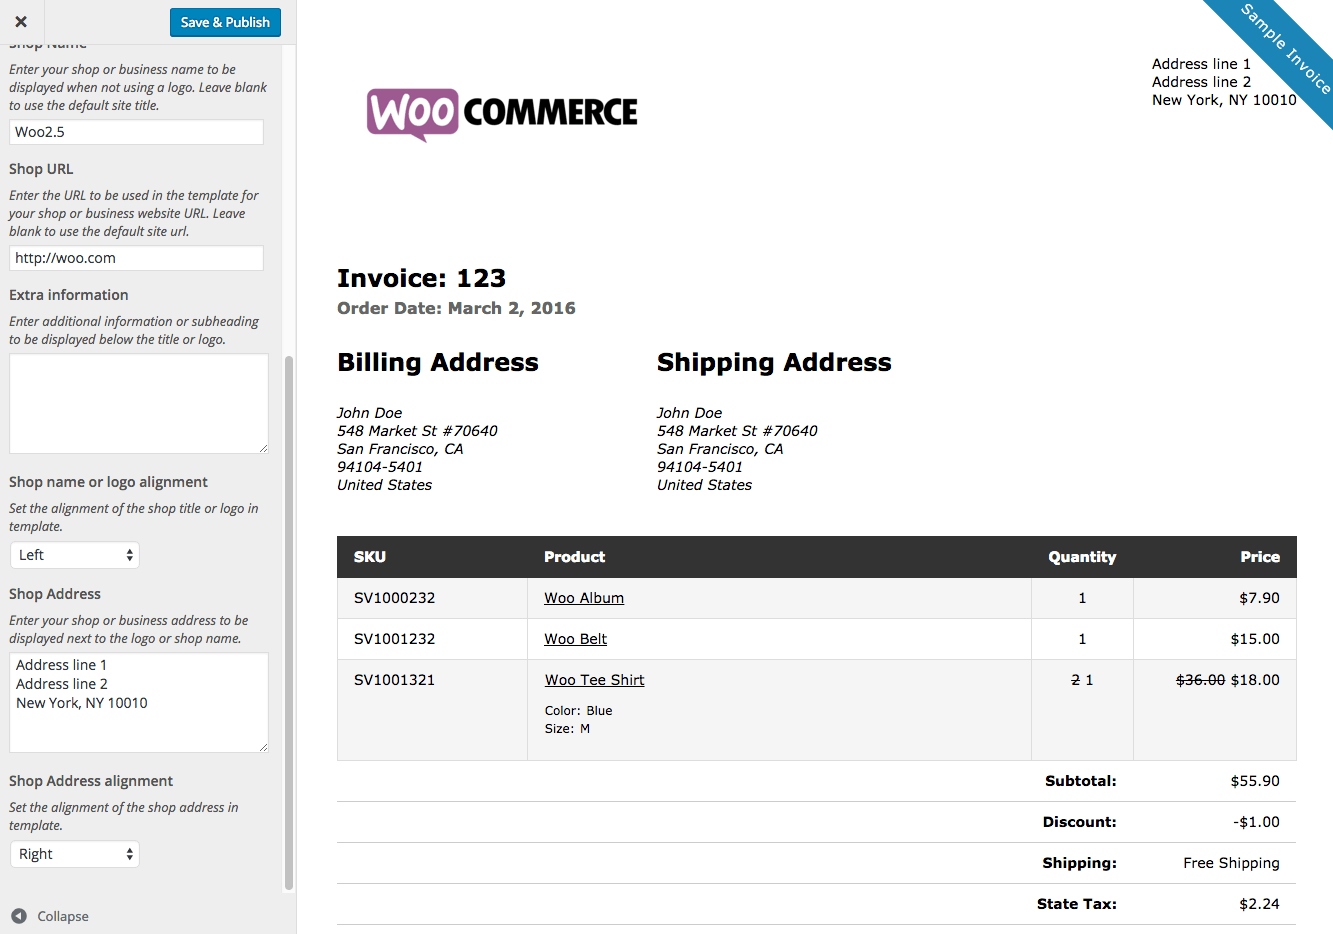 Angkajituus  Pretty Woocommerce Print Invoices Amp Packing Lists  Woocommerce Docs With Exciting Woocommerce Print Invoices  Packing Lists Customizer With Astonishing Certified Mail Receipts Also Mobile Receipt App In Addition Receipt Scanning Apps And Ios Receipt Scanner As Well As Hertz Request A Receipt Additionally Receipts For Pork Chops From Docswoocommercecom With Angkajituus  Exciting Woocommerce Print Invoices Amp Packing Lists  Woocommerce Docs With Astonishing Woocommerce Print Invoices  Packing Lists Customizer And Pretty Certified Mail Receipts Also Mobile Receipt App In Addition Receipt Scanning Apps From Docswoocommercecom